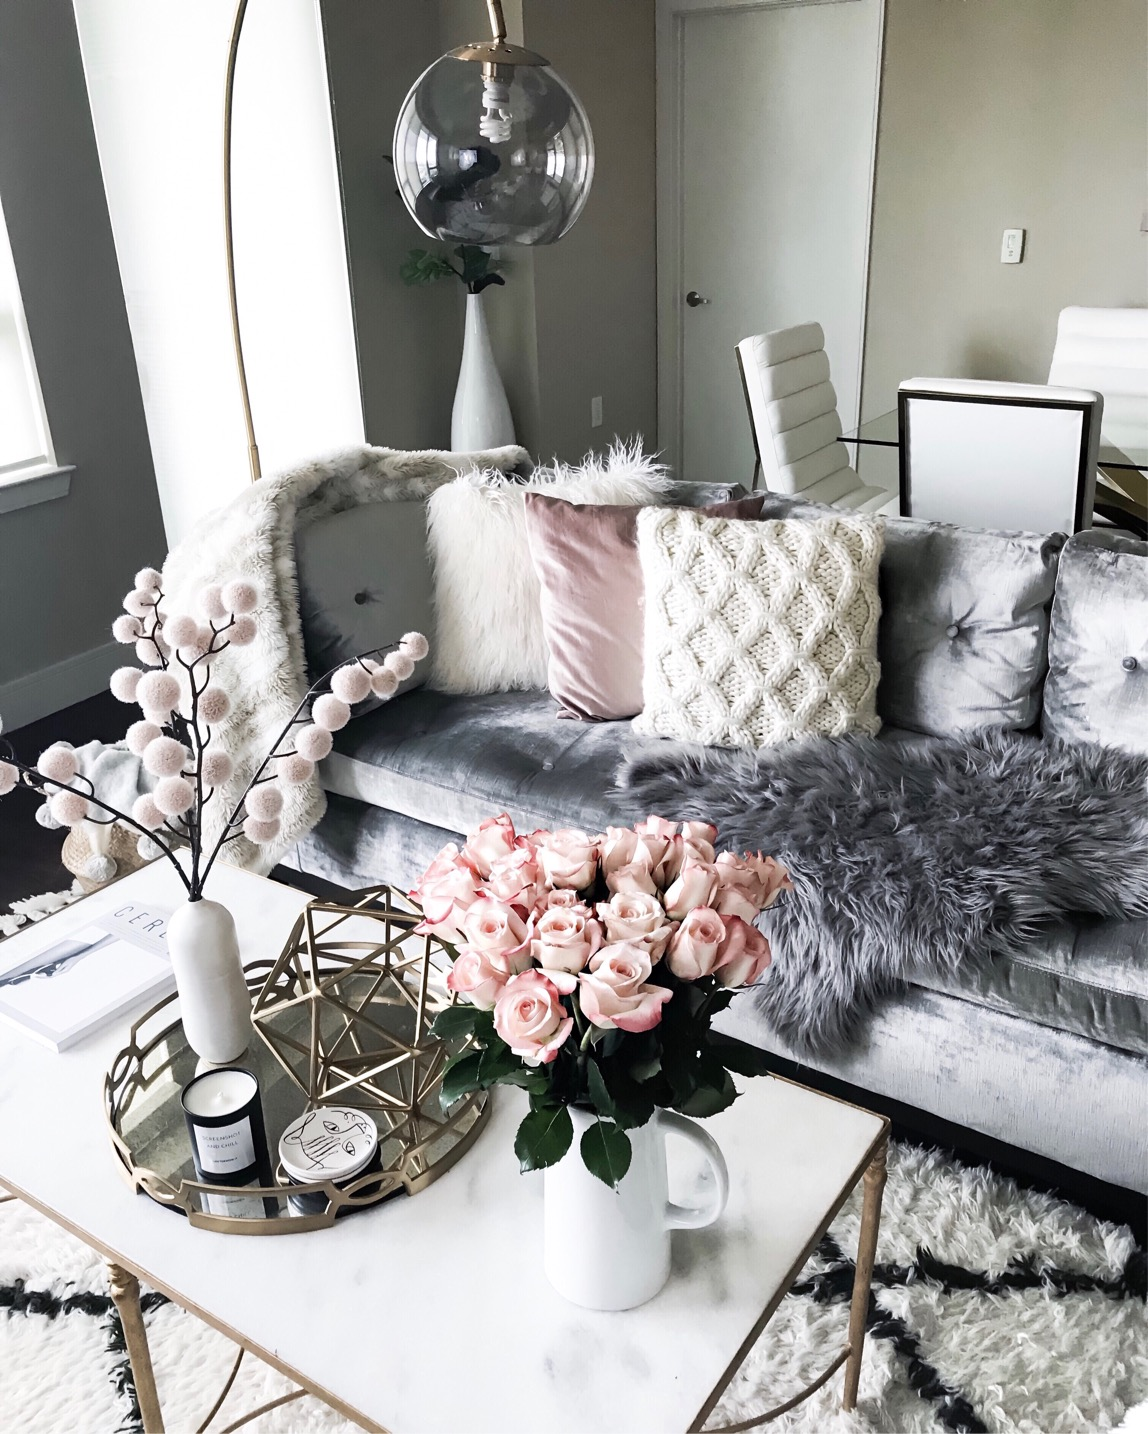 Tiffany Jais Houston fashion and lifestyle blogger | Home decor, scandinavian interiors